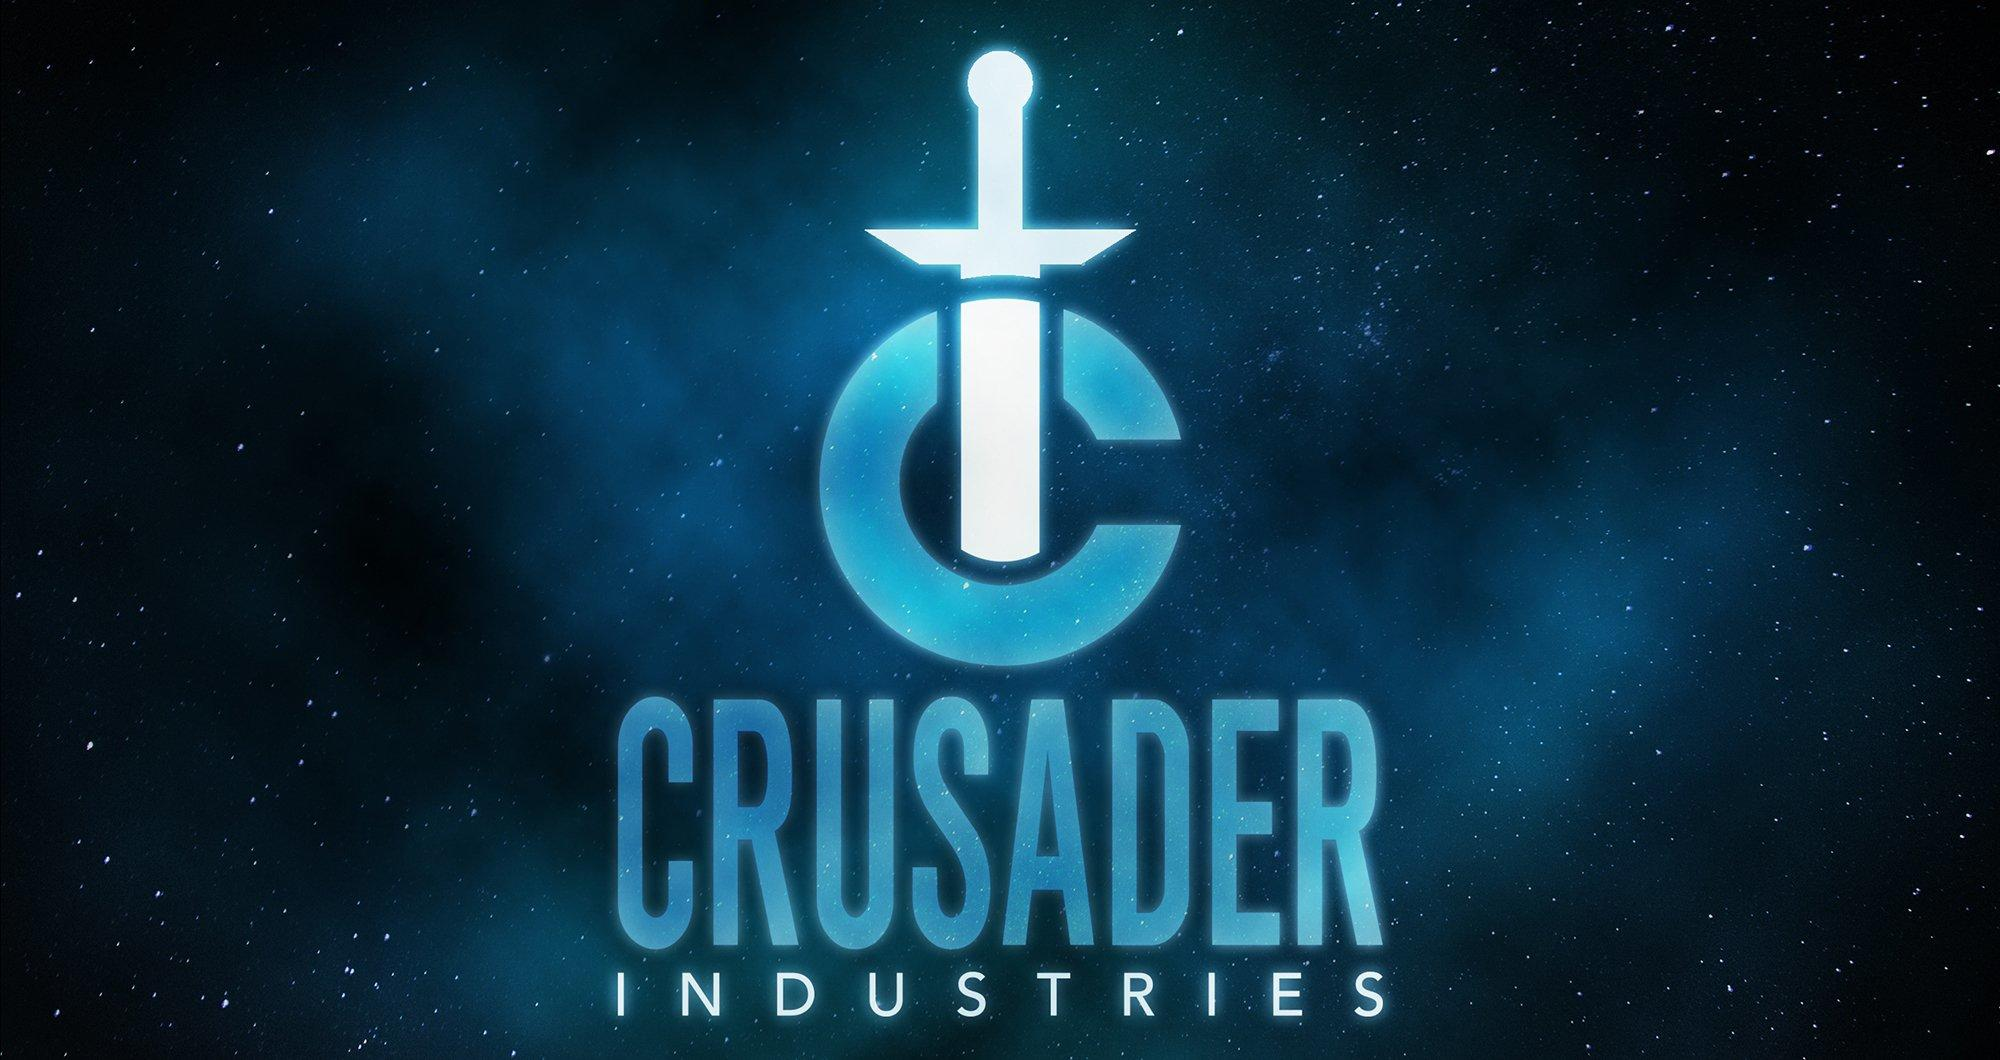 Portfolio: Crusader Industries